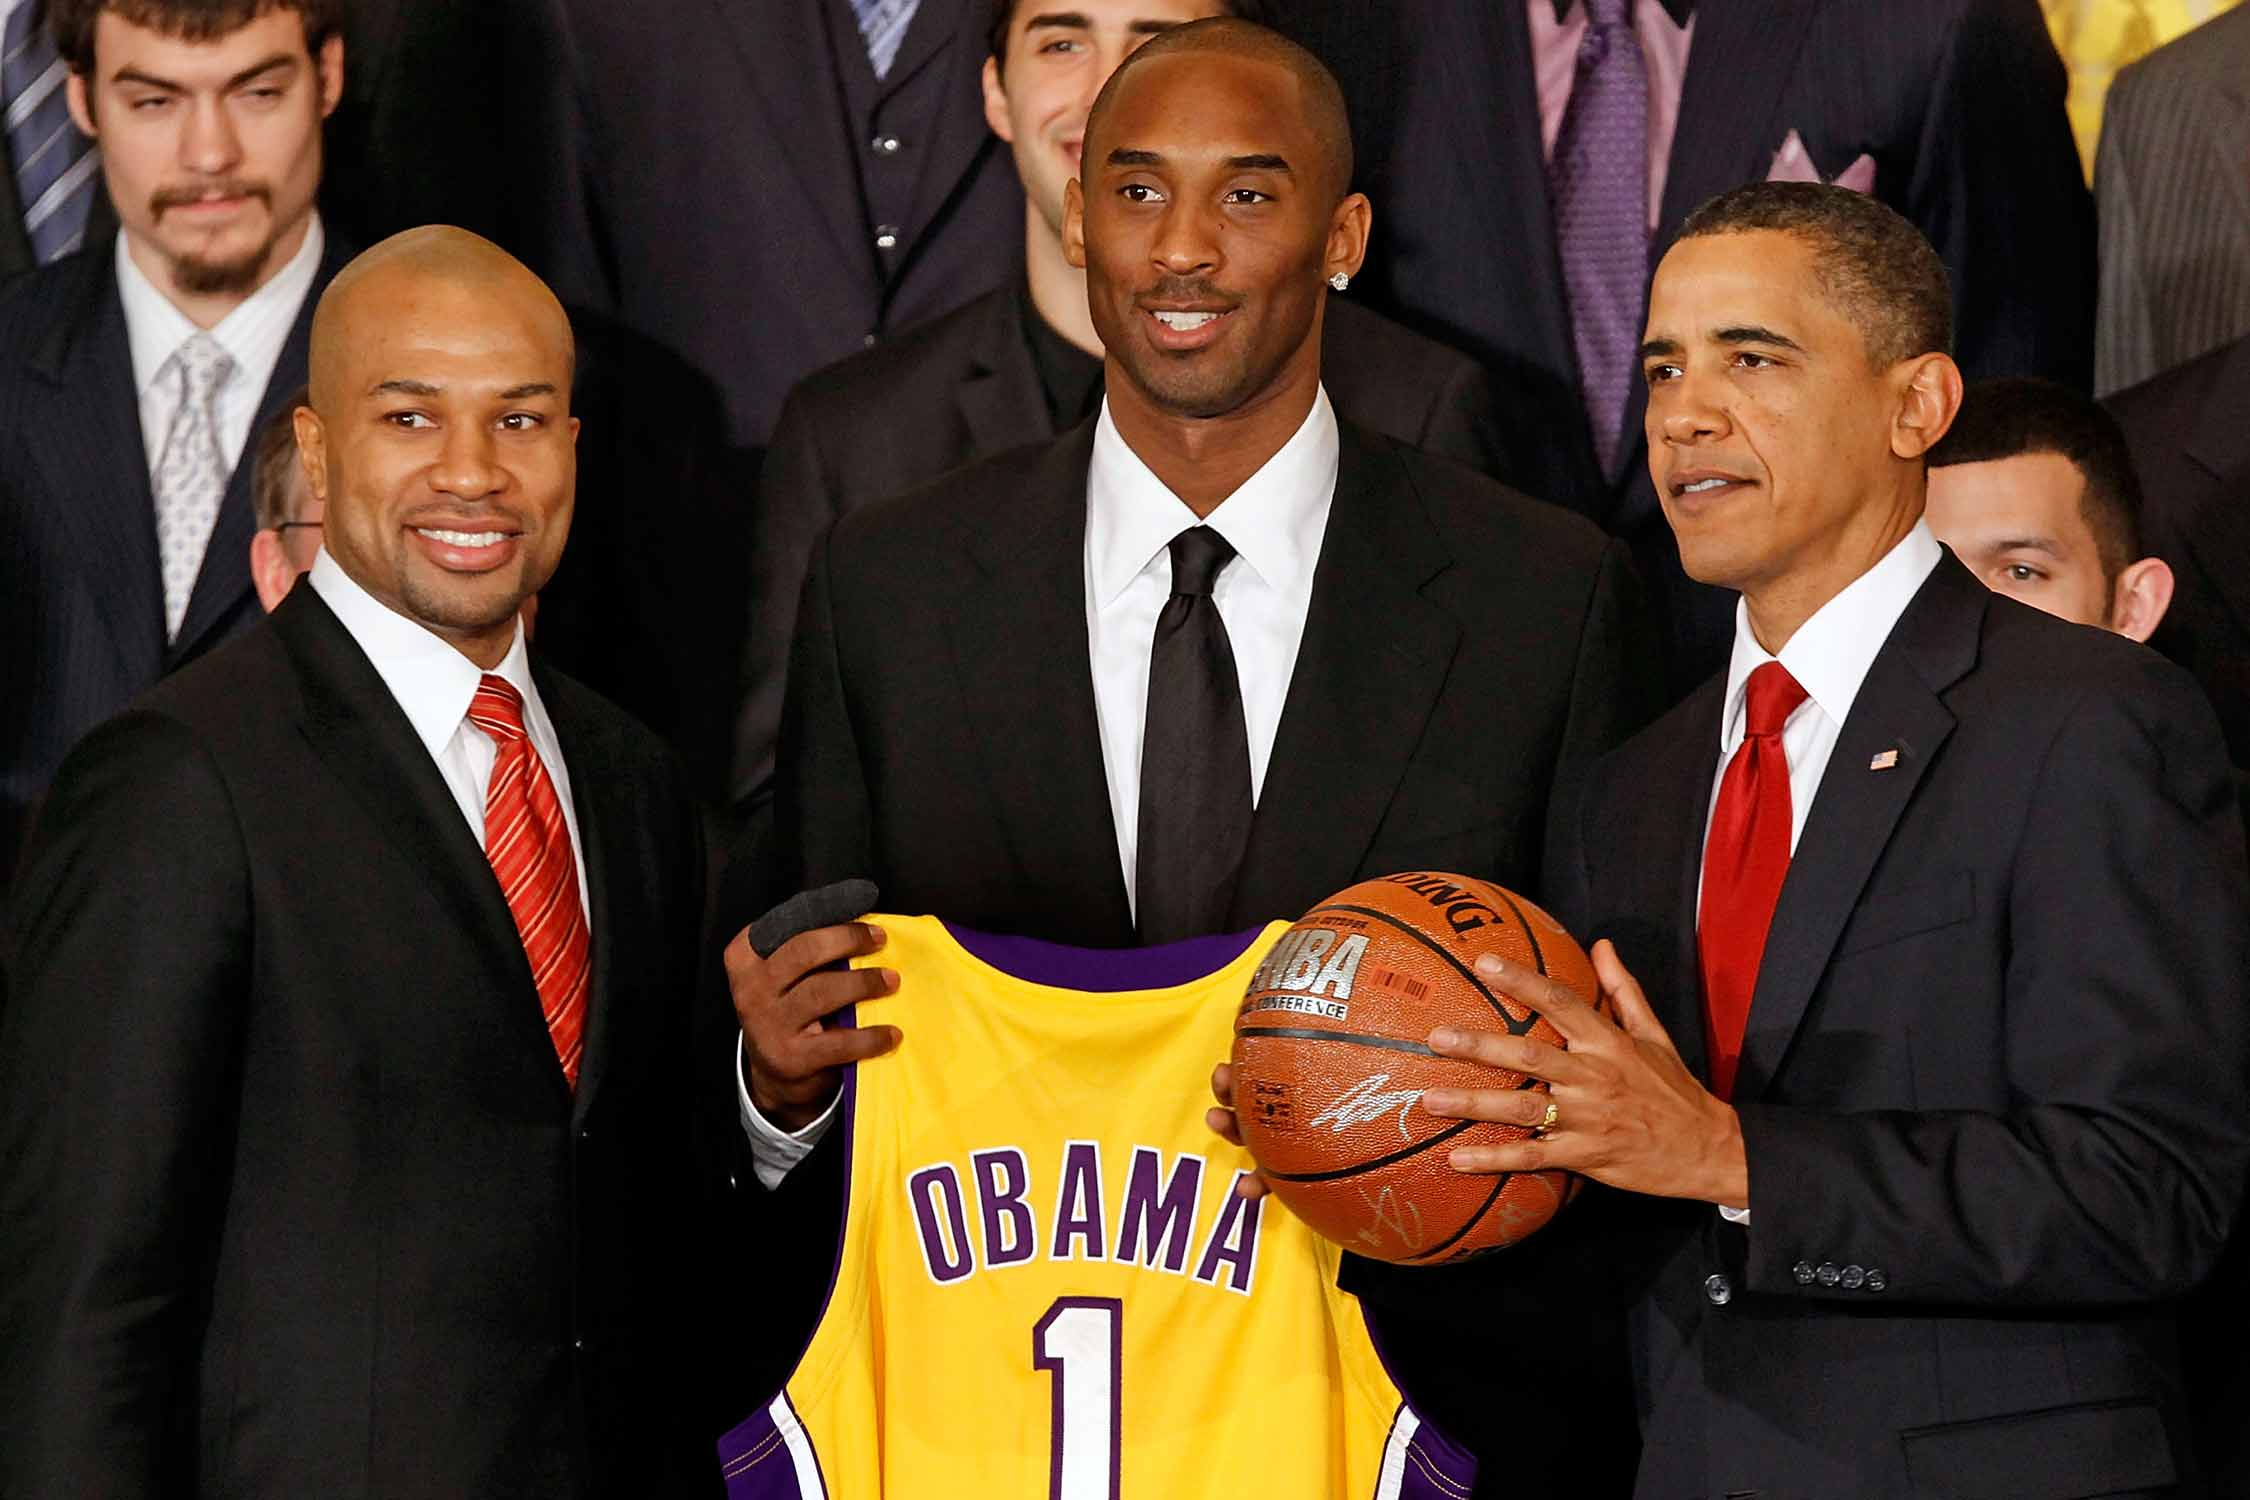 Derek Fisher, Kobe Bryant and President Barack Obama posing during the Los Angeles Lakers' White House visit in 2010.